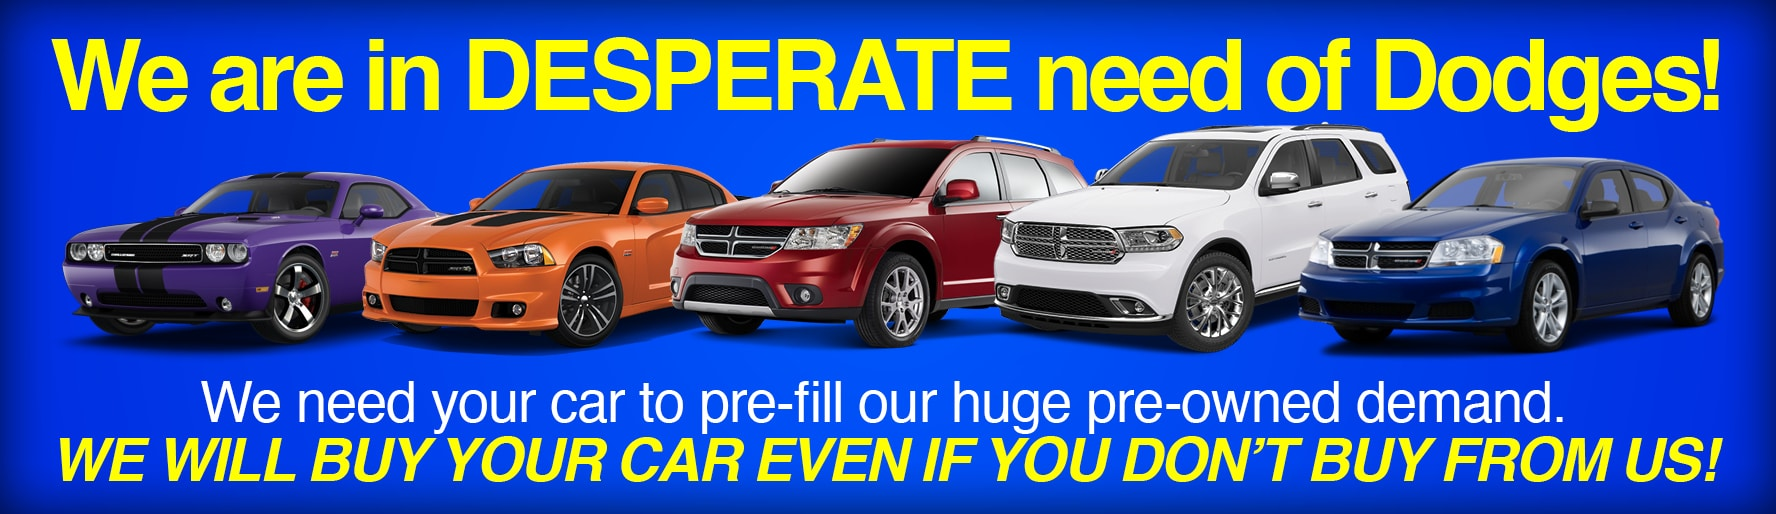 Used Car Specials | Towbin Dodge - Serving Greater Las Vegas